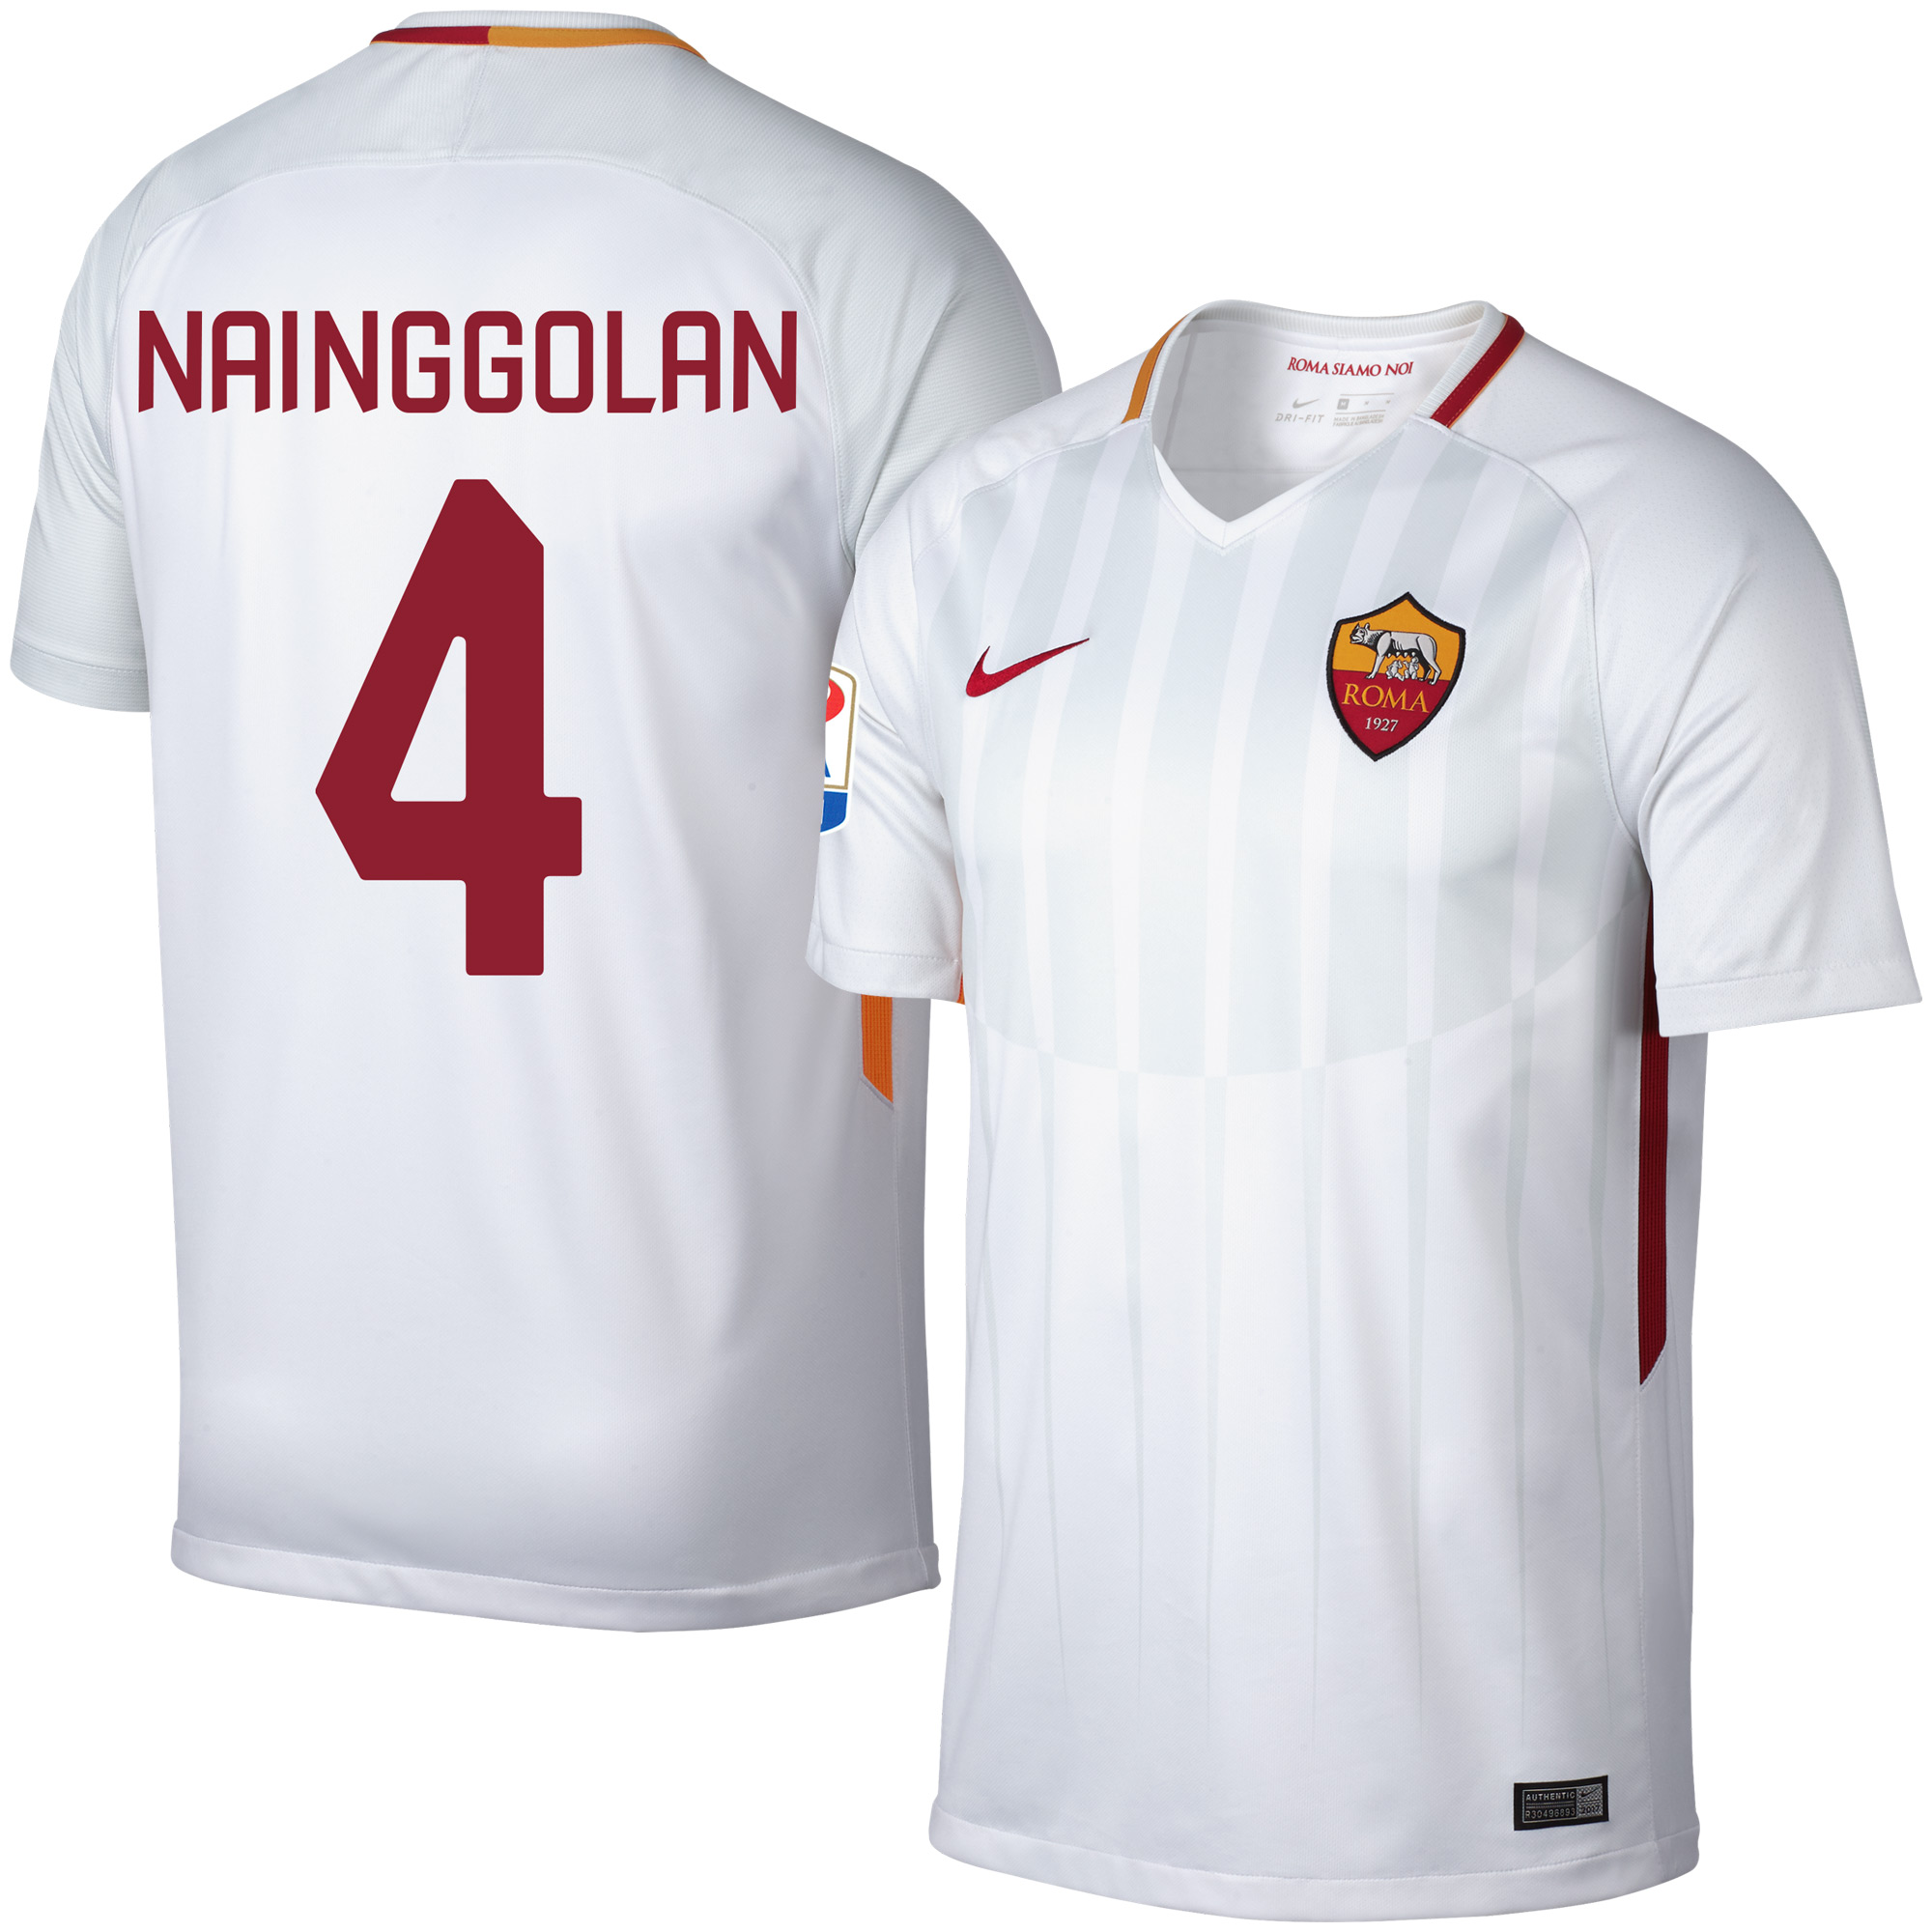 AS Roma Away Nainggolan Jersey 2017 / 2018 (Fan Style Printing) - M